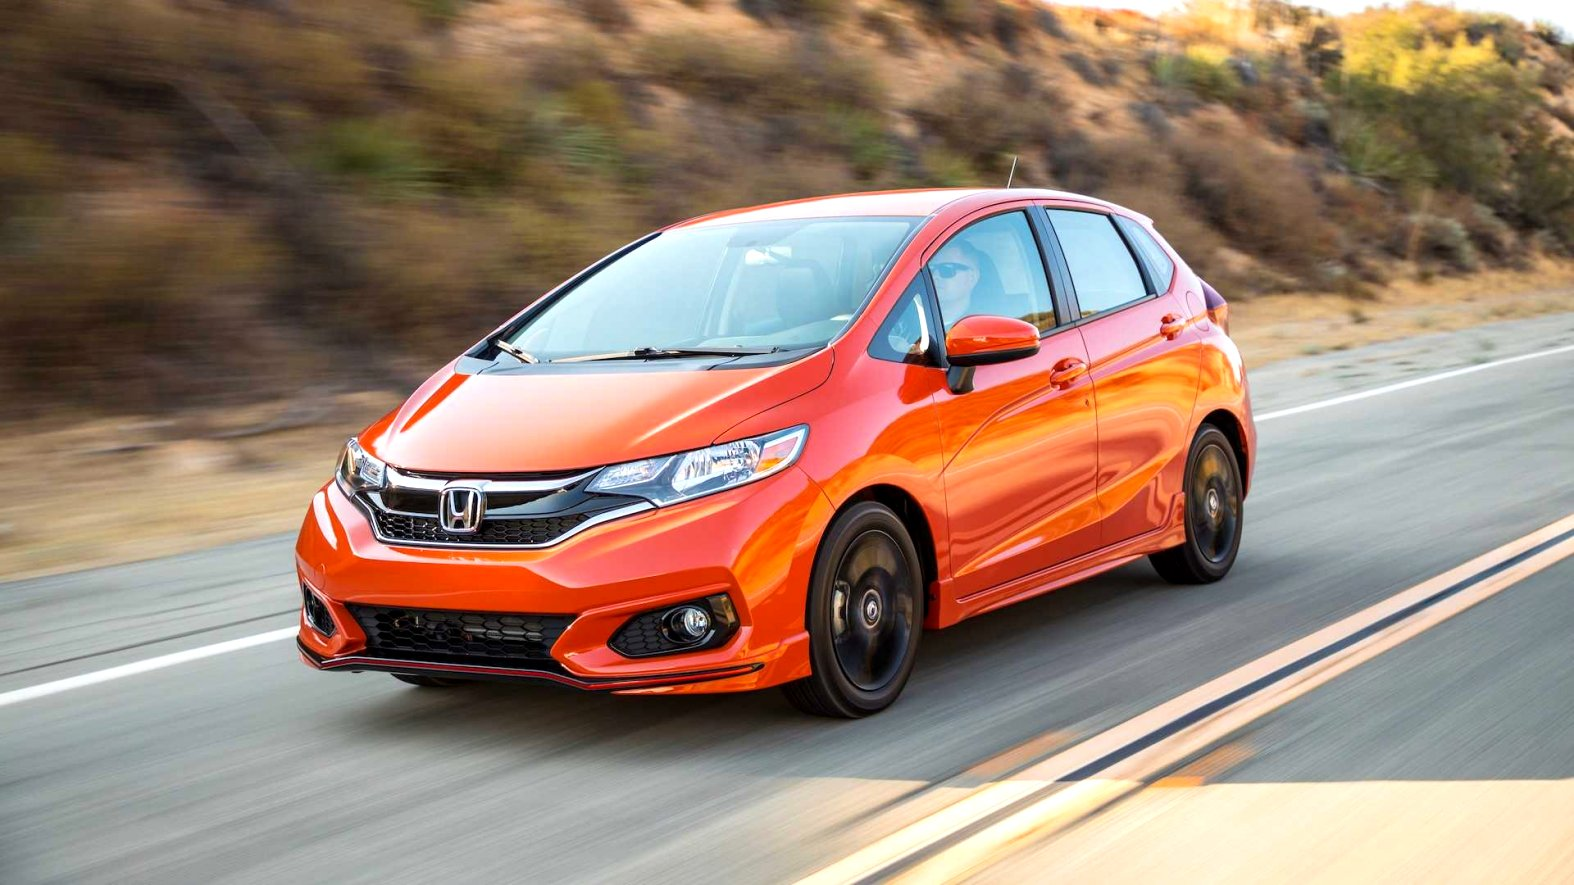 honda fit 2020 price Price and Review